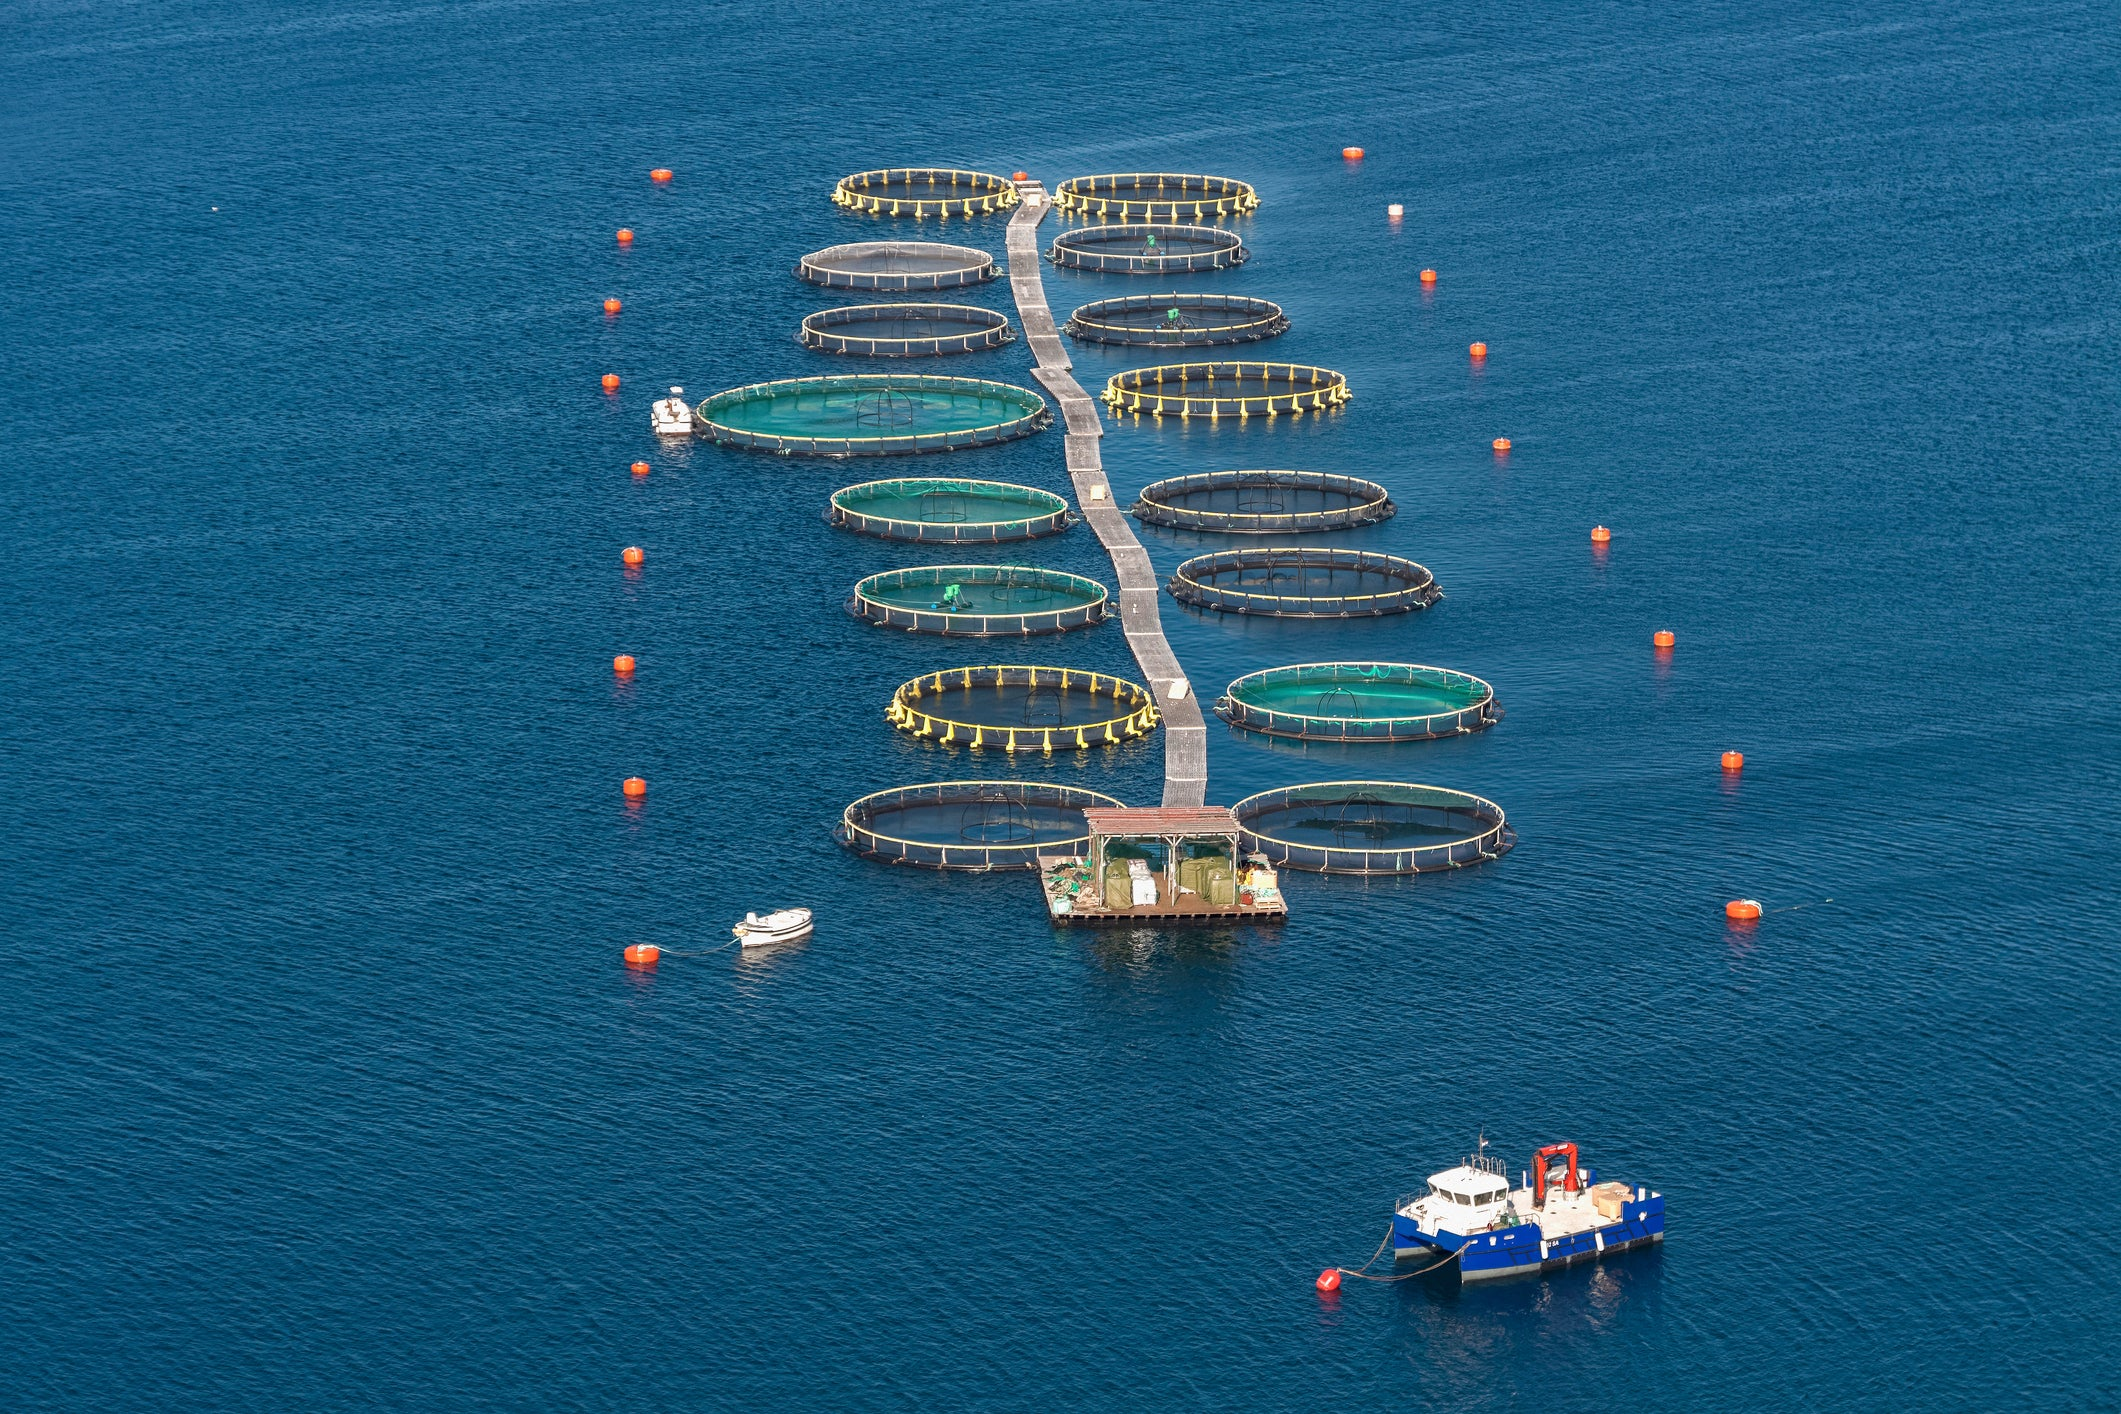 The Pros and Cons of Aquaculture as a Solution for Overfishing